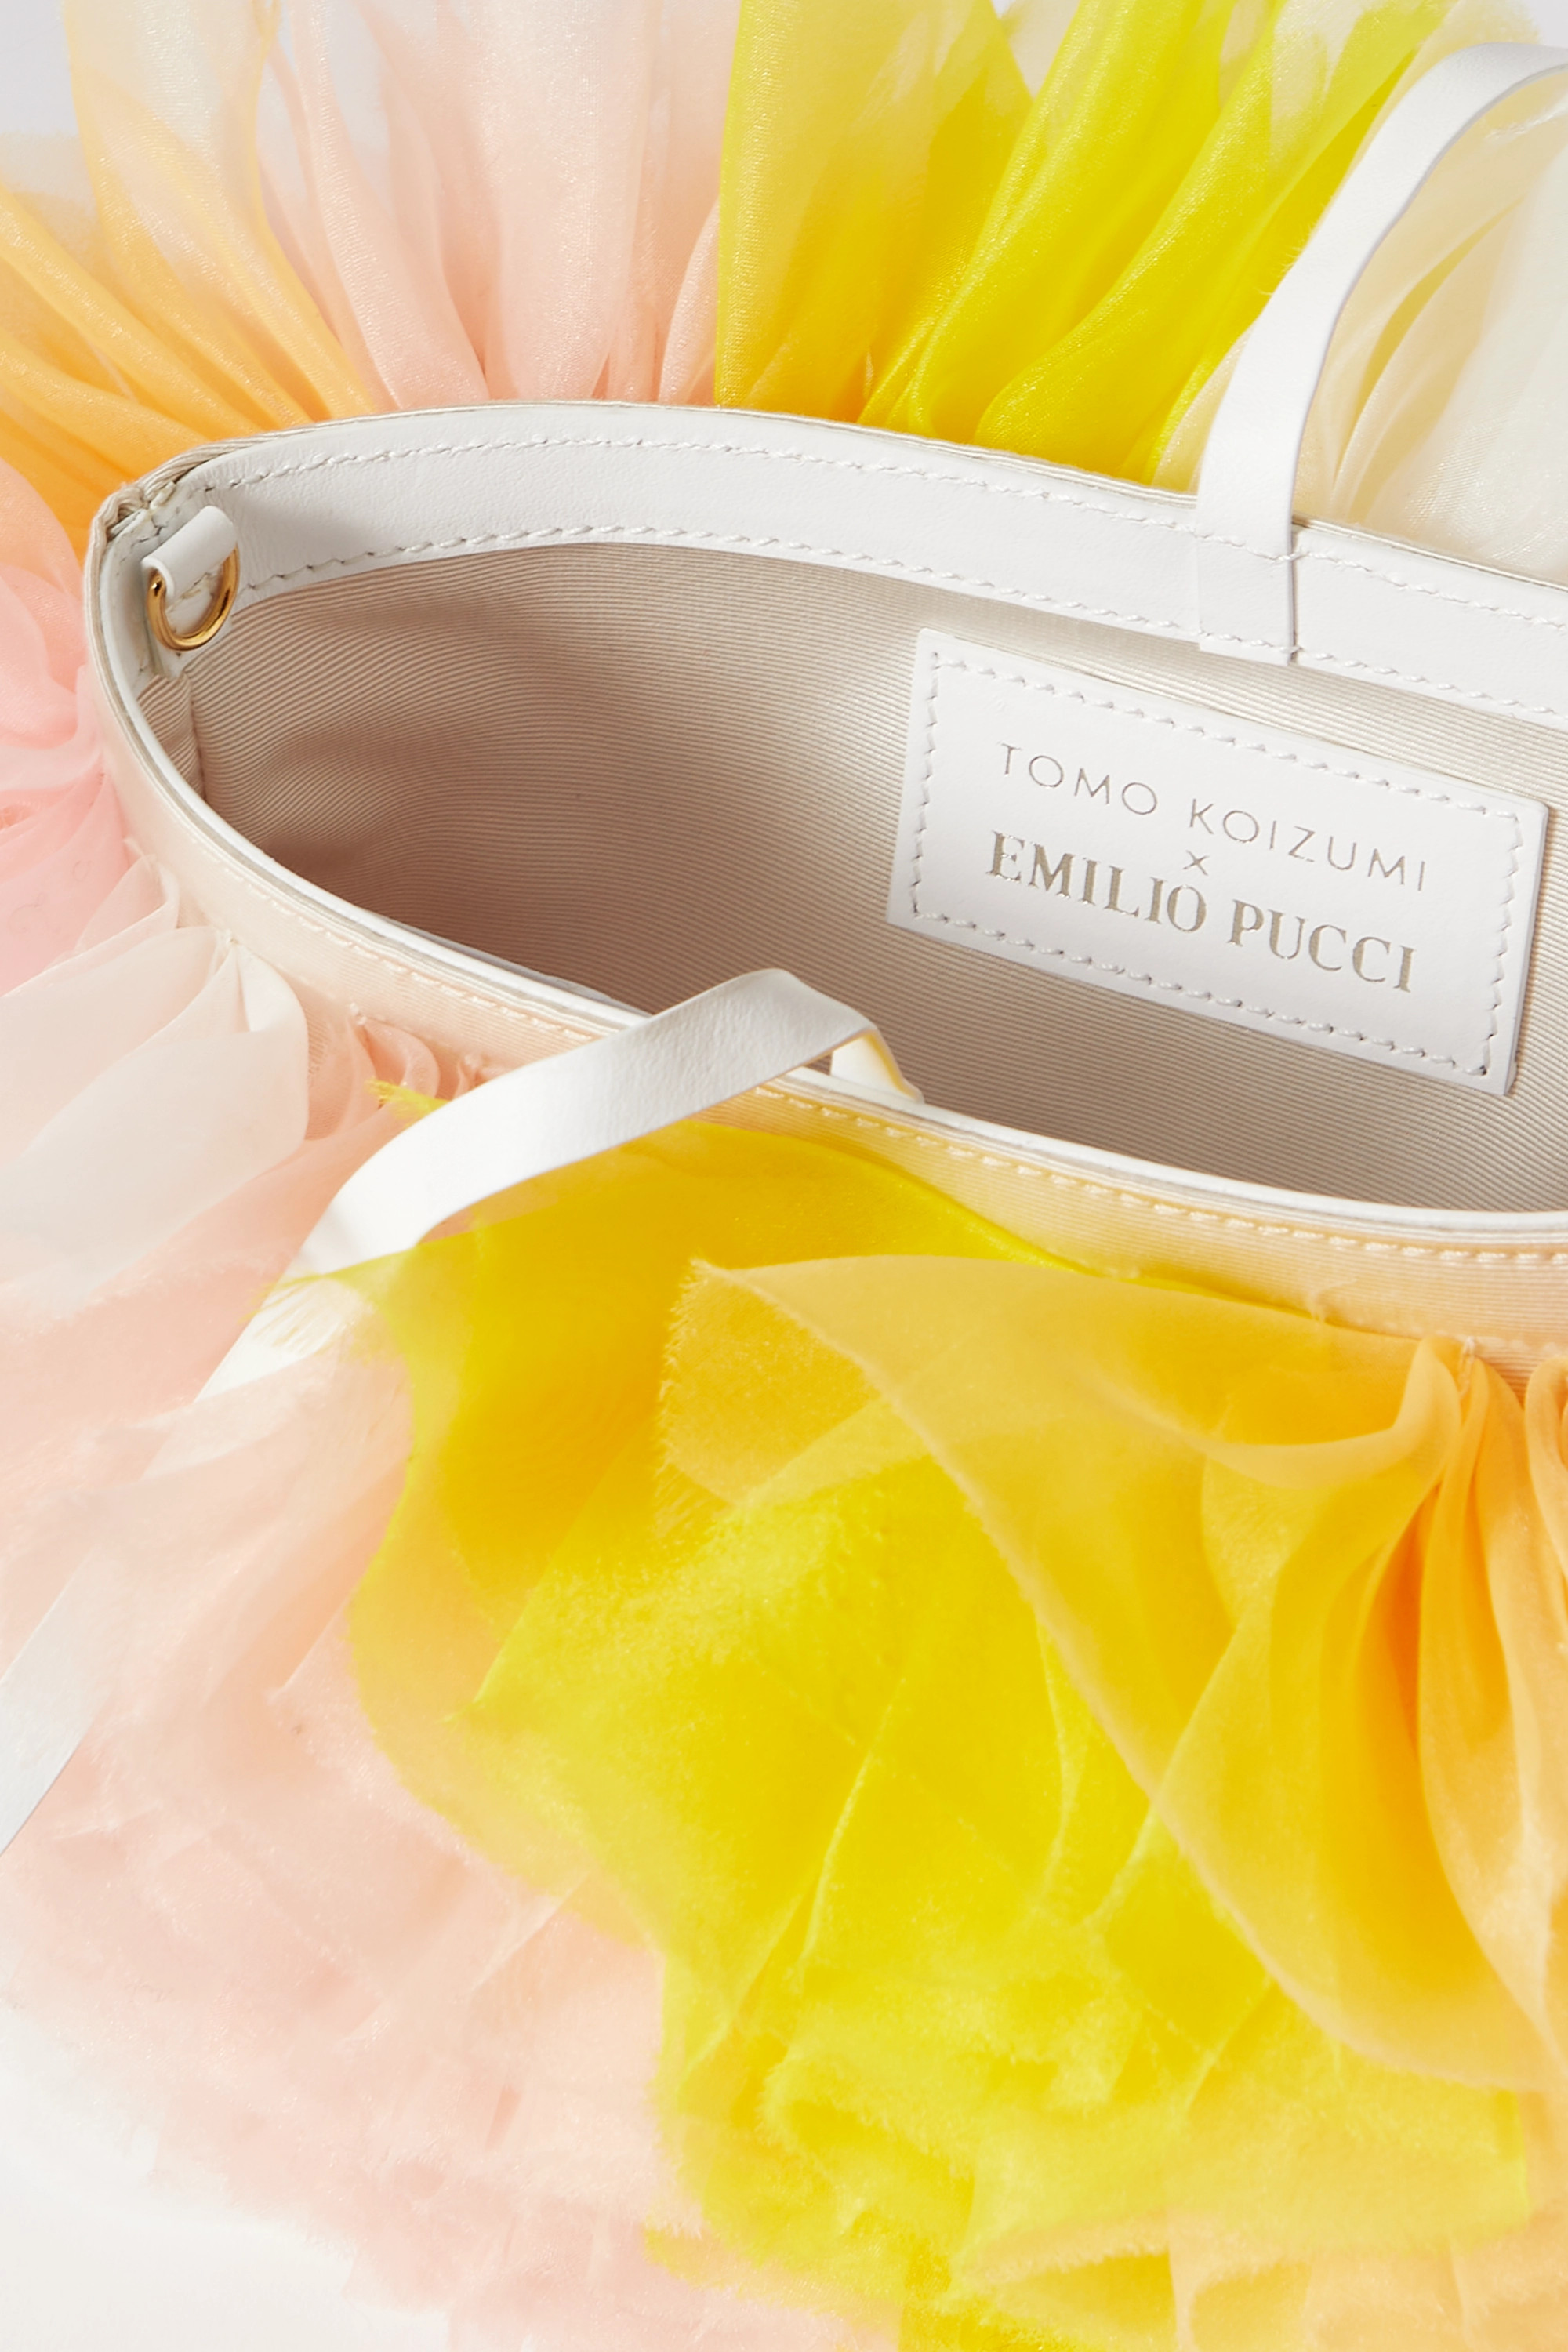 TOMO KOIZUMI X EMILIO PUCCI Leather-trimmed ruffled tulle shoulder bag